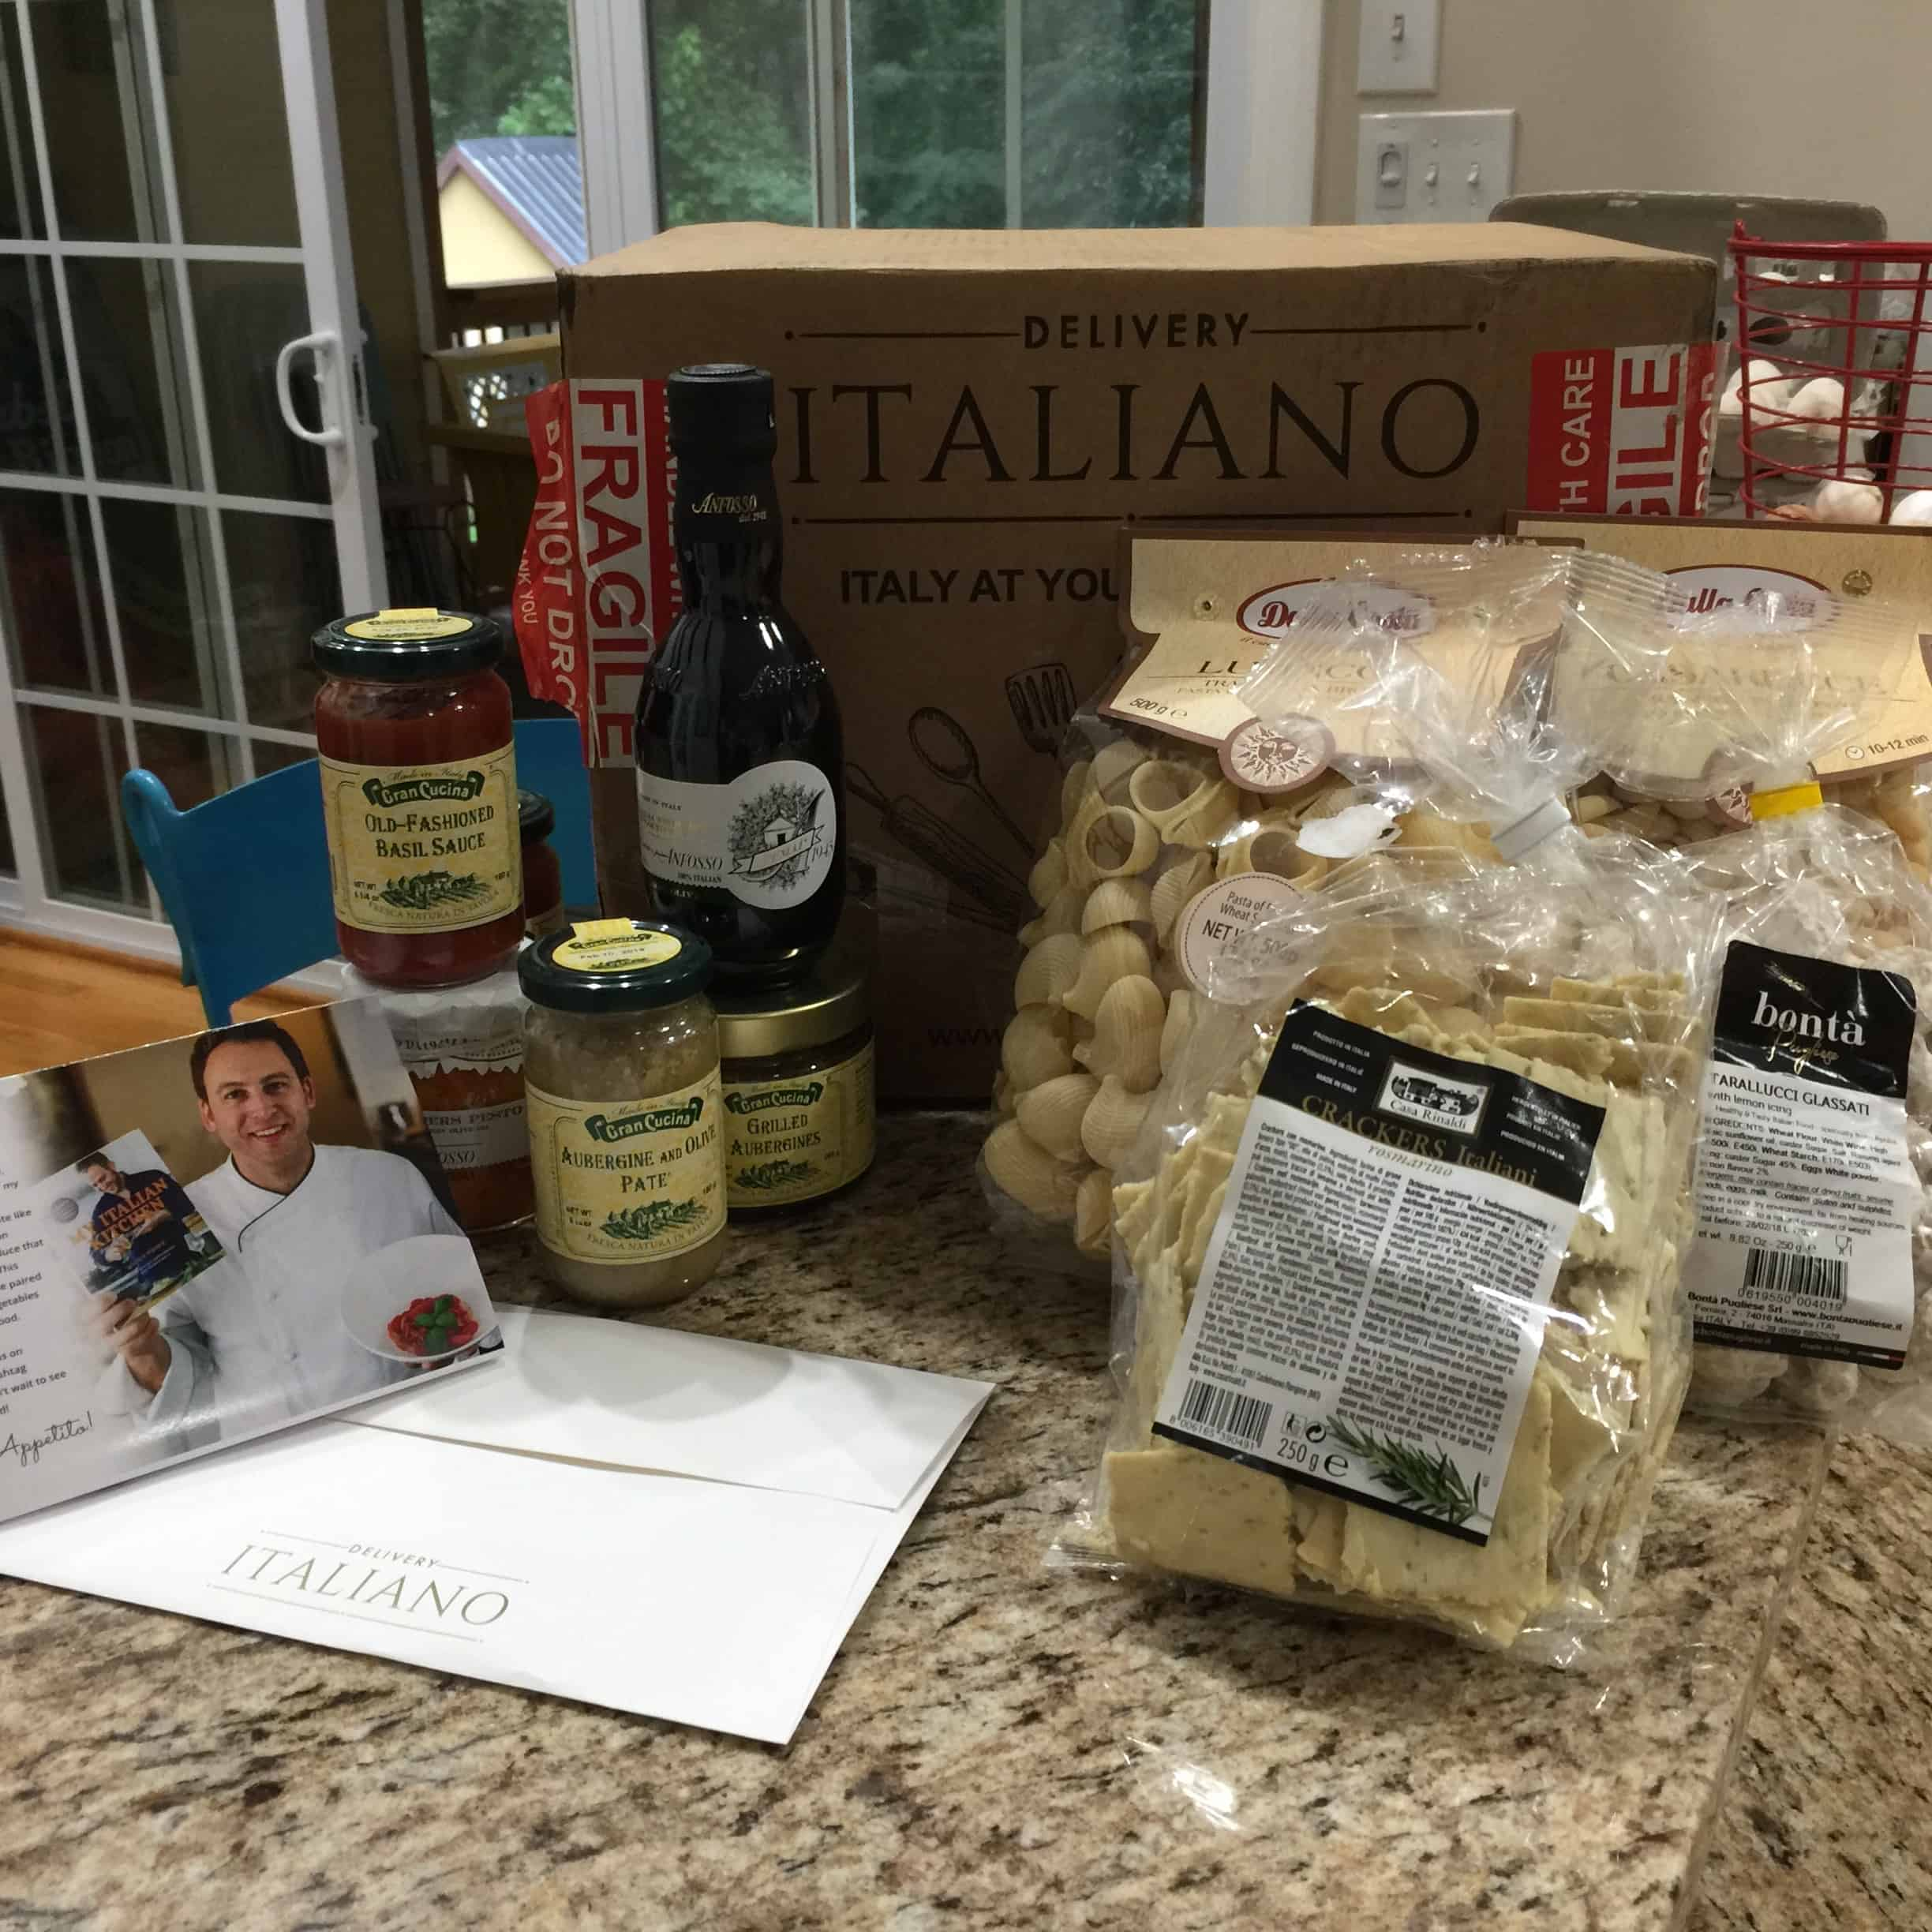 Saved by Scottie Delivery Italiano box contents